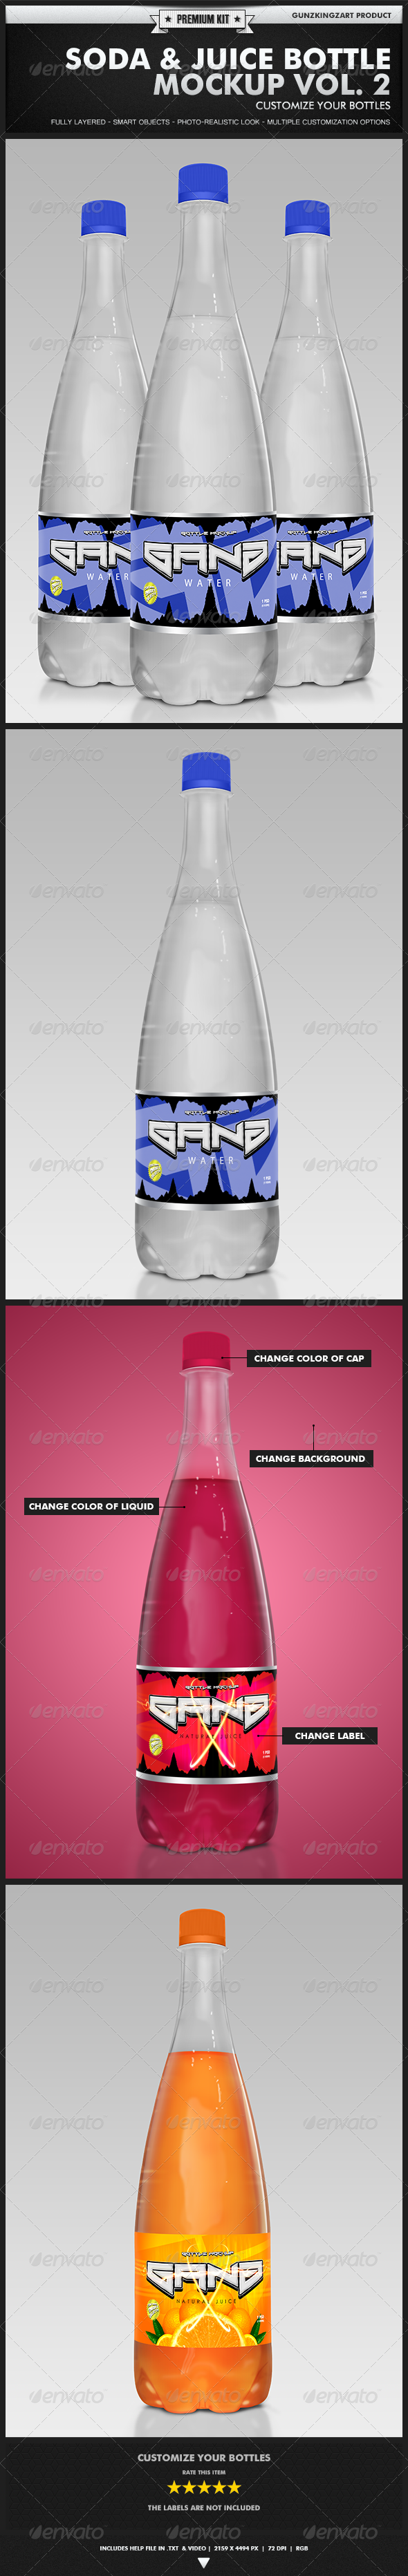 Soda & Juice Bottle Mockup Vol. 2 - Premium Kit - Food and Drink Packaging